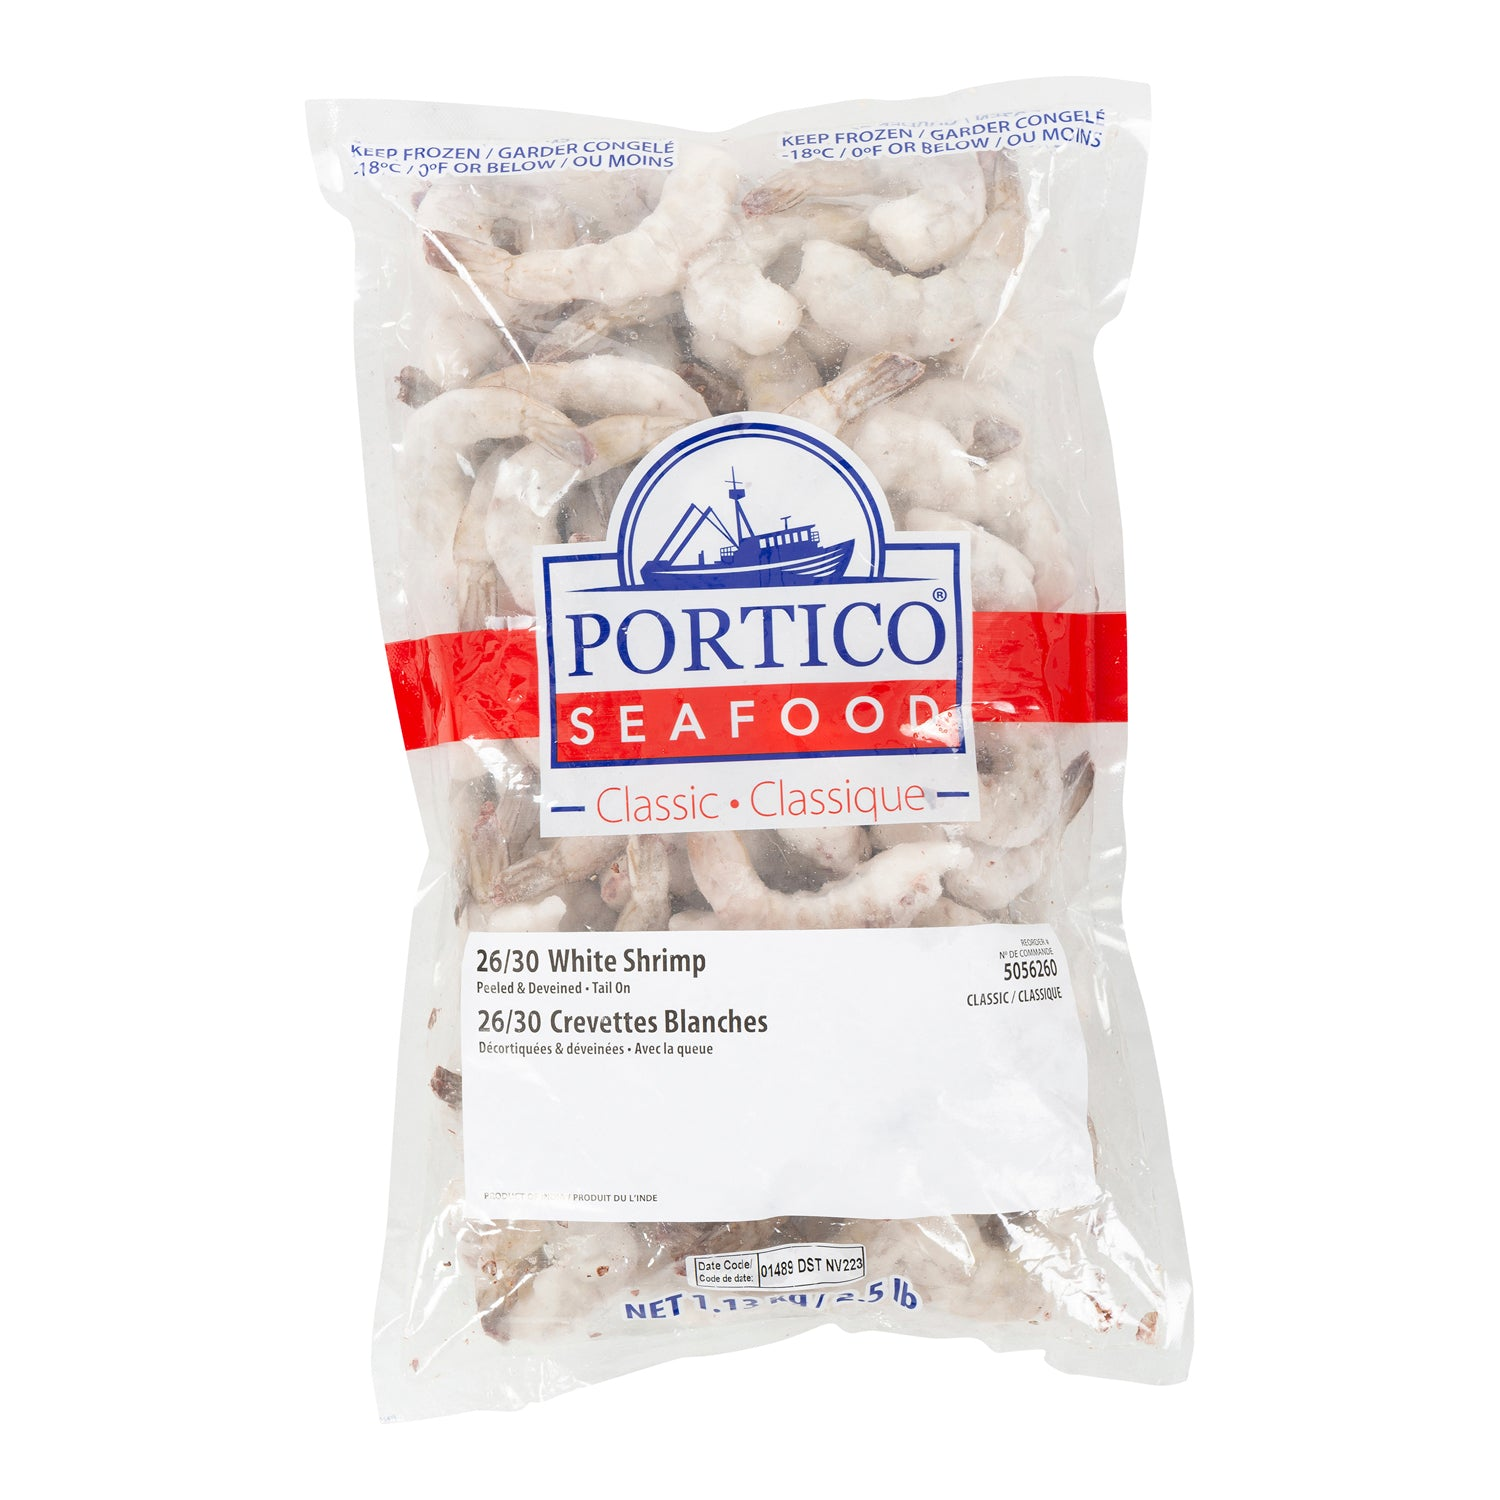 Sysco Portico Frozen Raw Extra Large White Shrimp Peeled & Deveined With Tail On (26-30 shrimp per lb) 2.5 lb - 2 Pack [$8.60/lb]